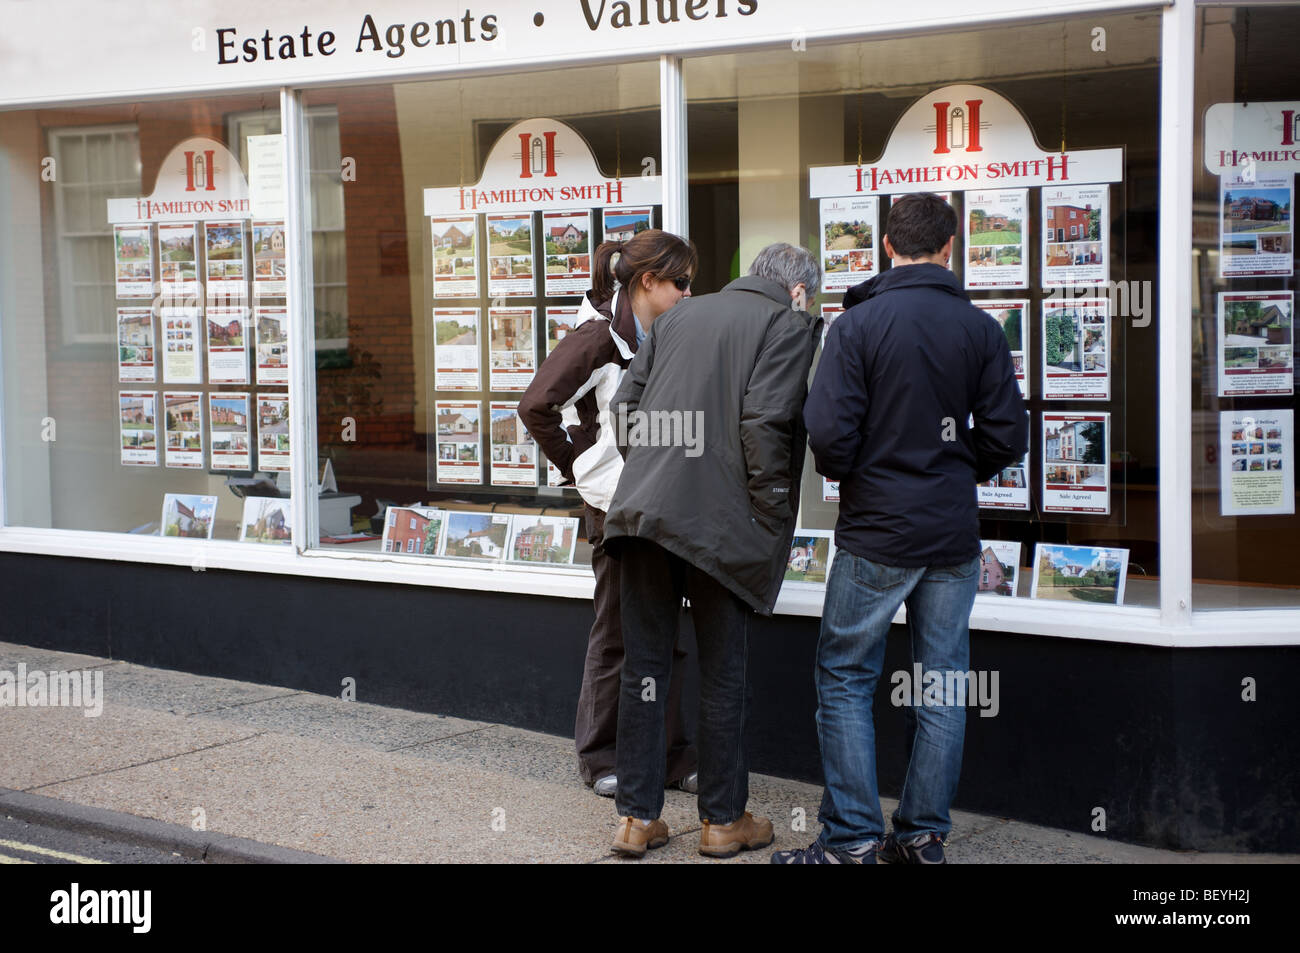 House buyers looking in estate agents window in the market town of Woodbridge, Suffolk, UK. - Stock Image